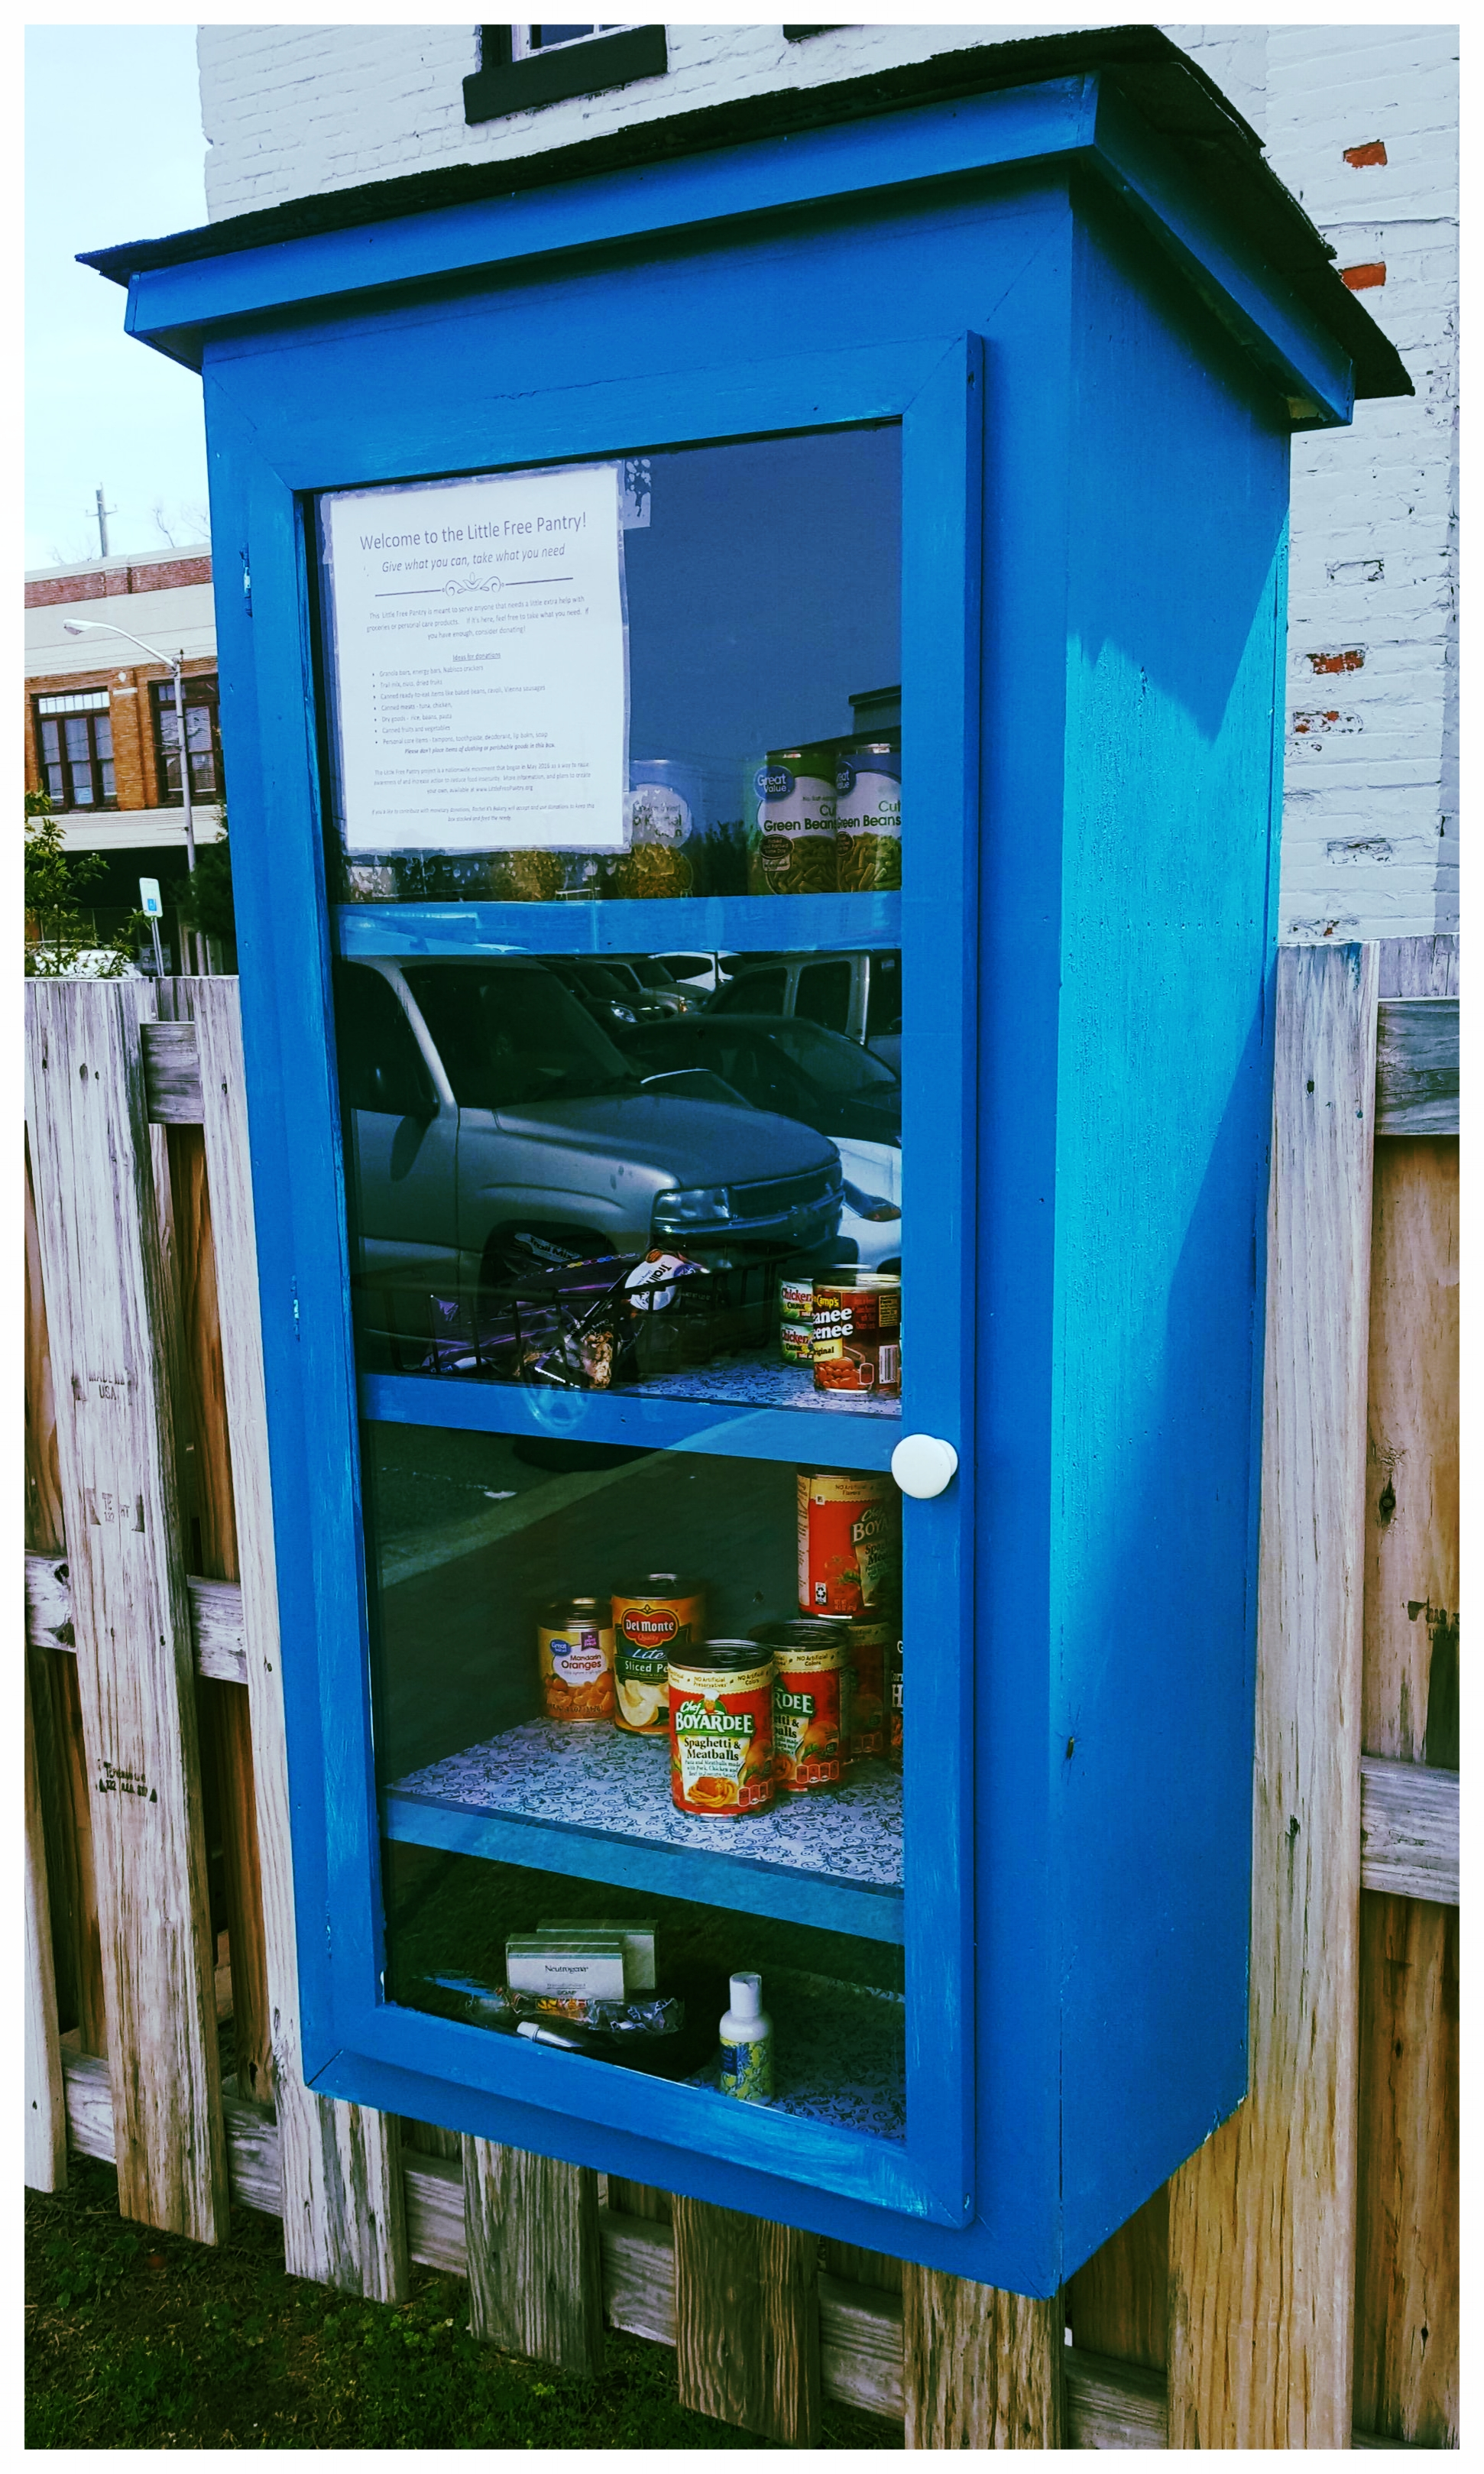 Little Free Pantry - In April 2018, we opened up our